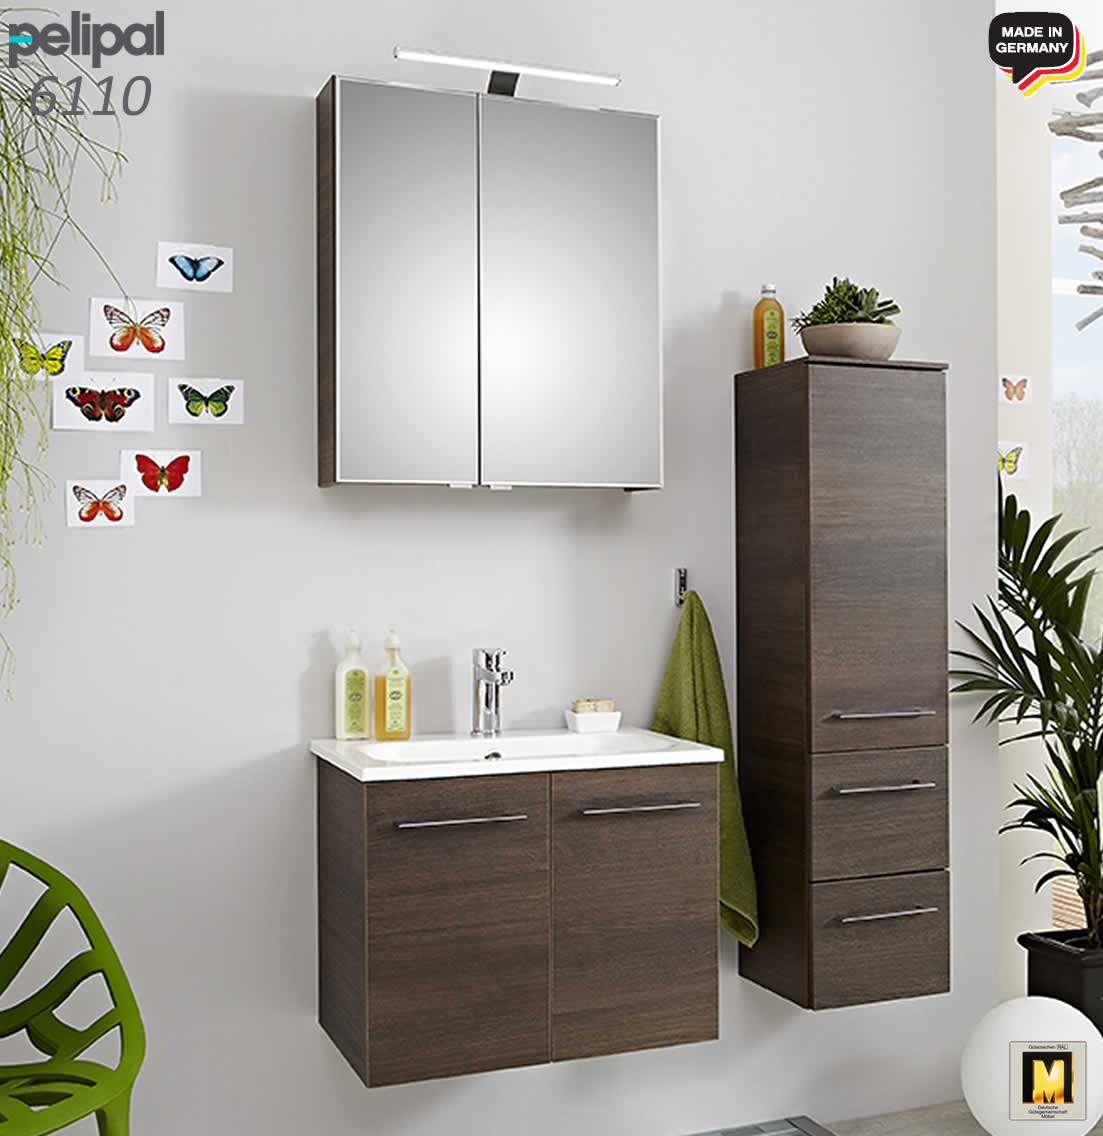 pelipal badm bel 60 cm reuniecollegenoetsele. Black Bedroom Furniture Sets. Home Design Ideas